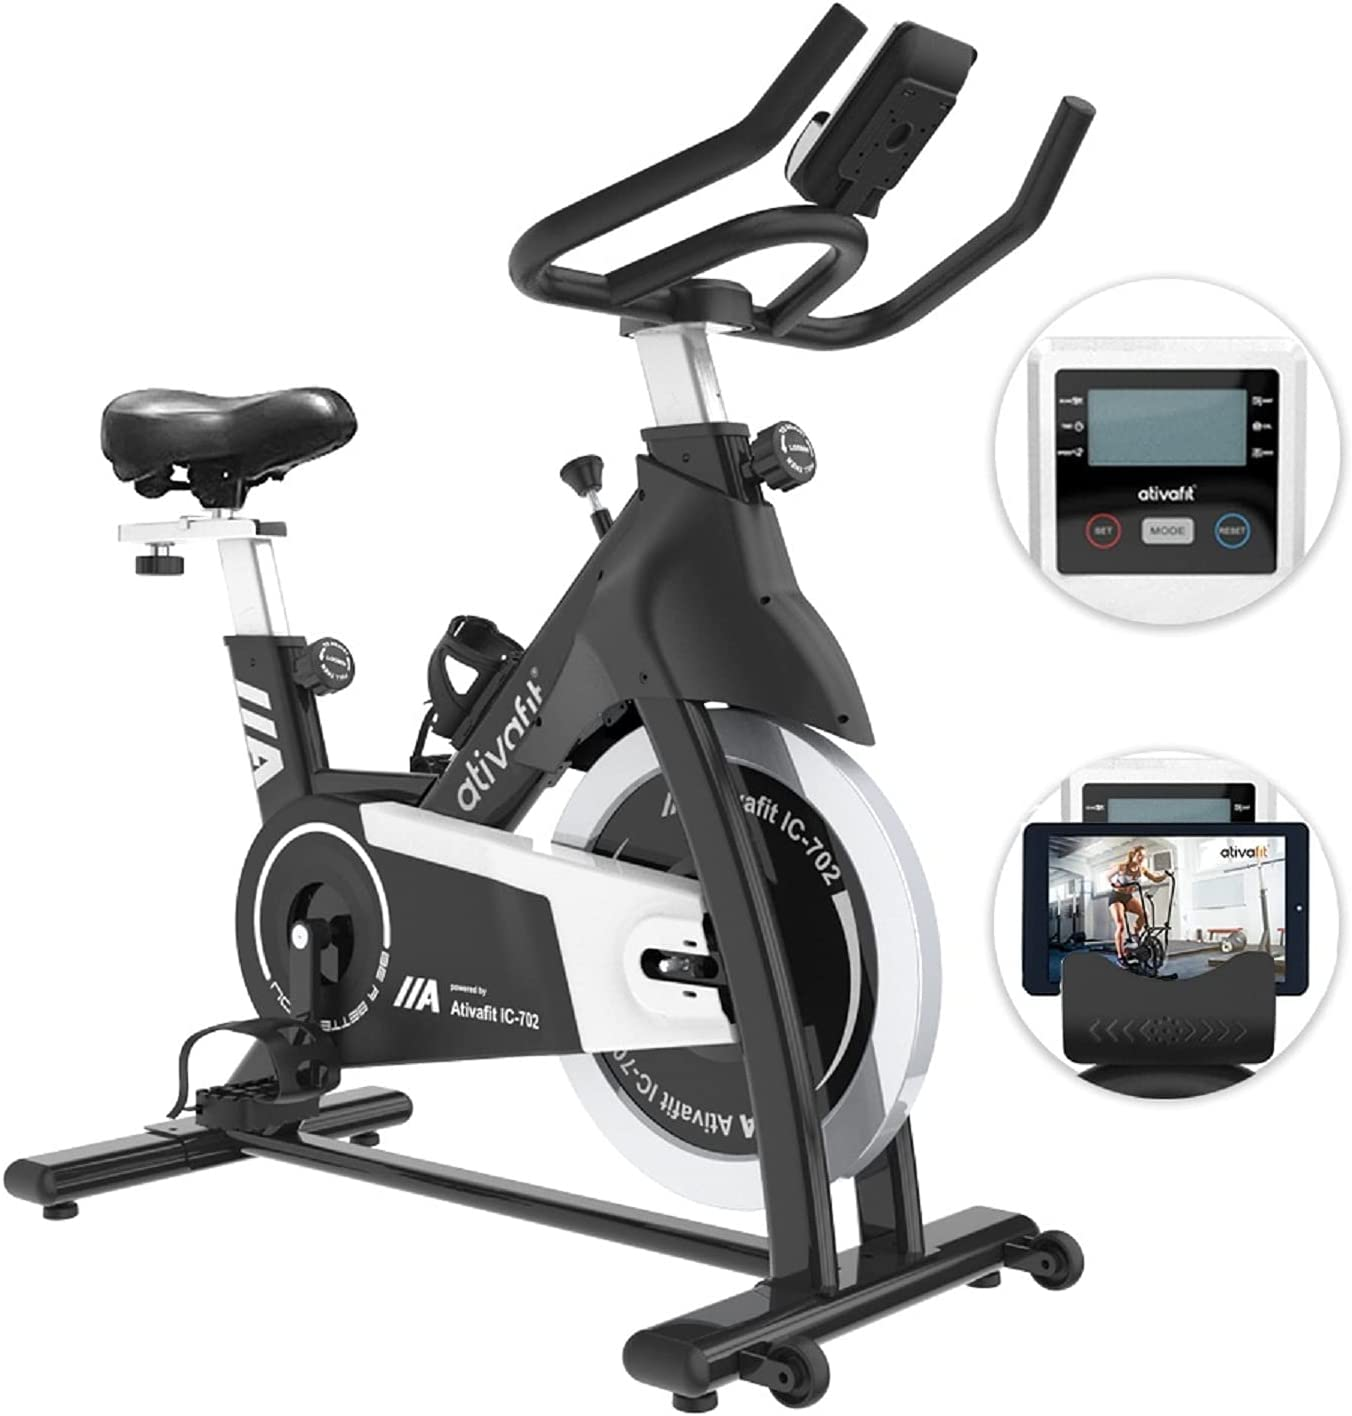 ASOG Max 48% OFF Directly managed store Indoor Cycling Exercise Bike Studio Spin Cycles Exerci